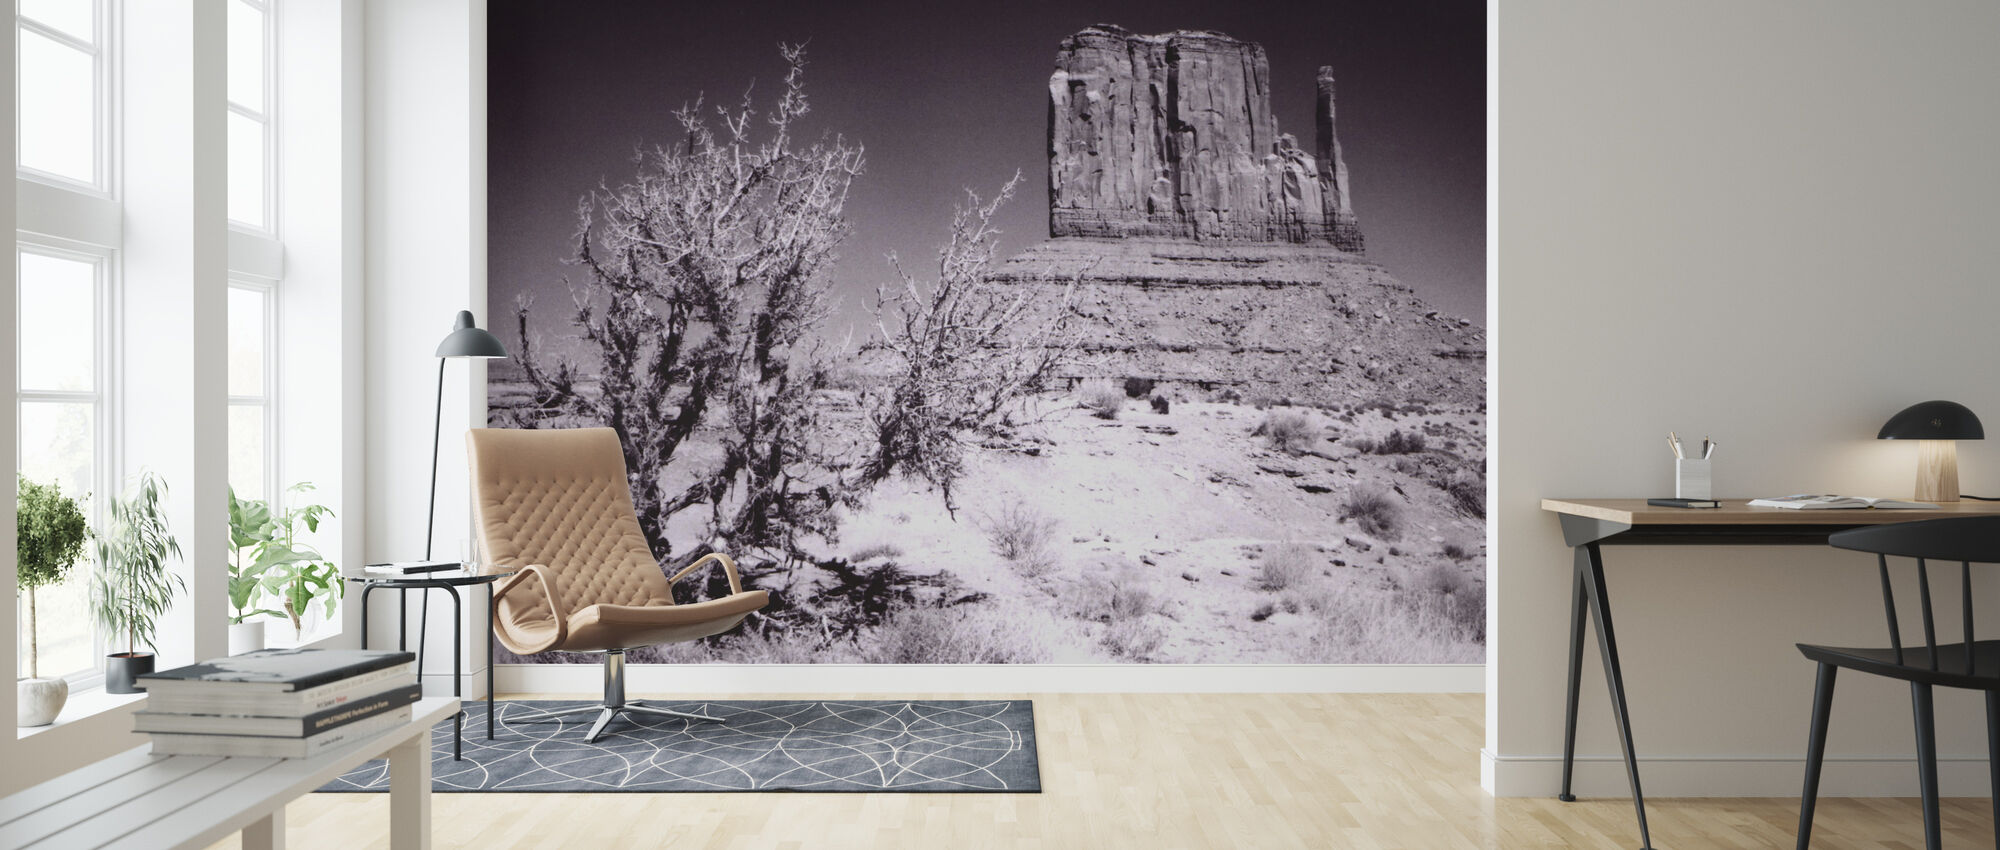 Monument Valley, Utah, USA - Wallpaper - Living Room